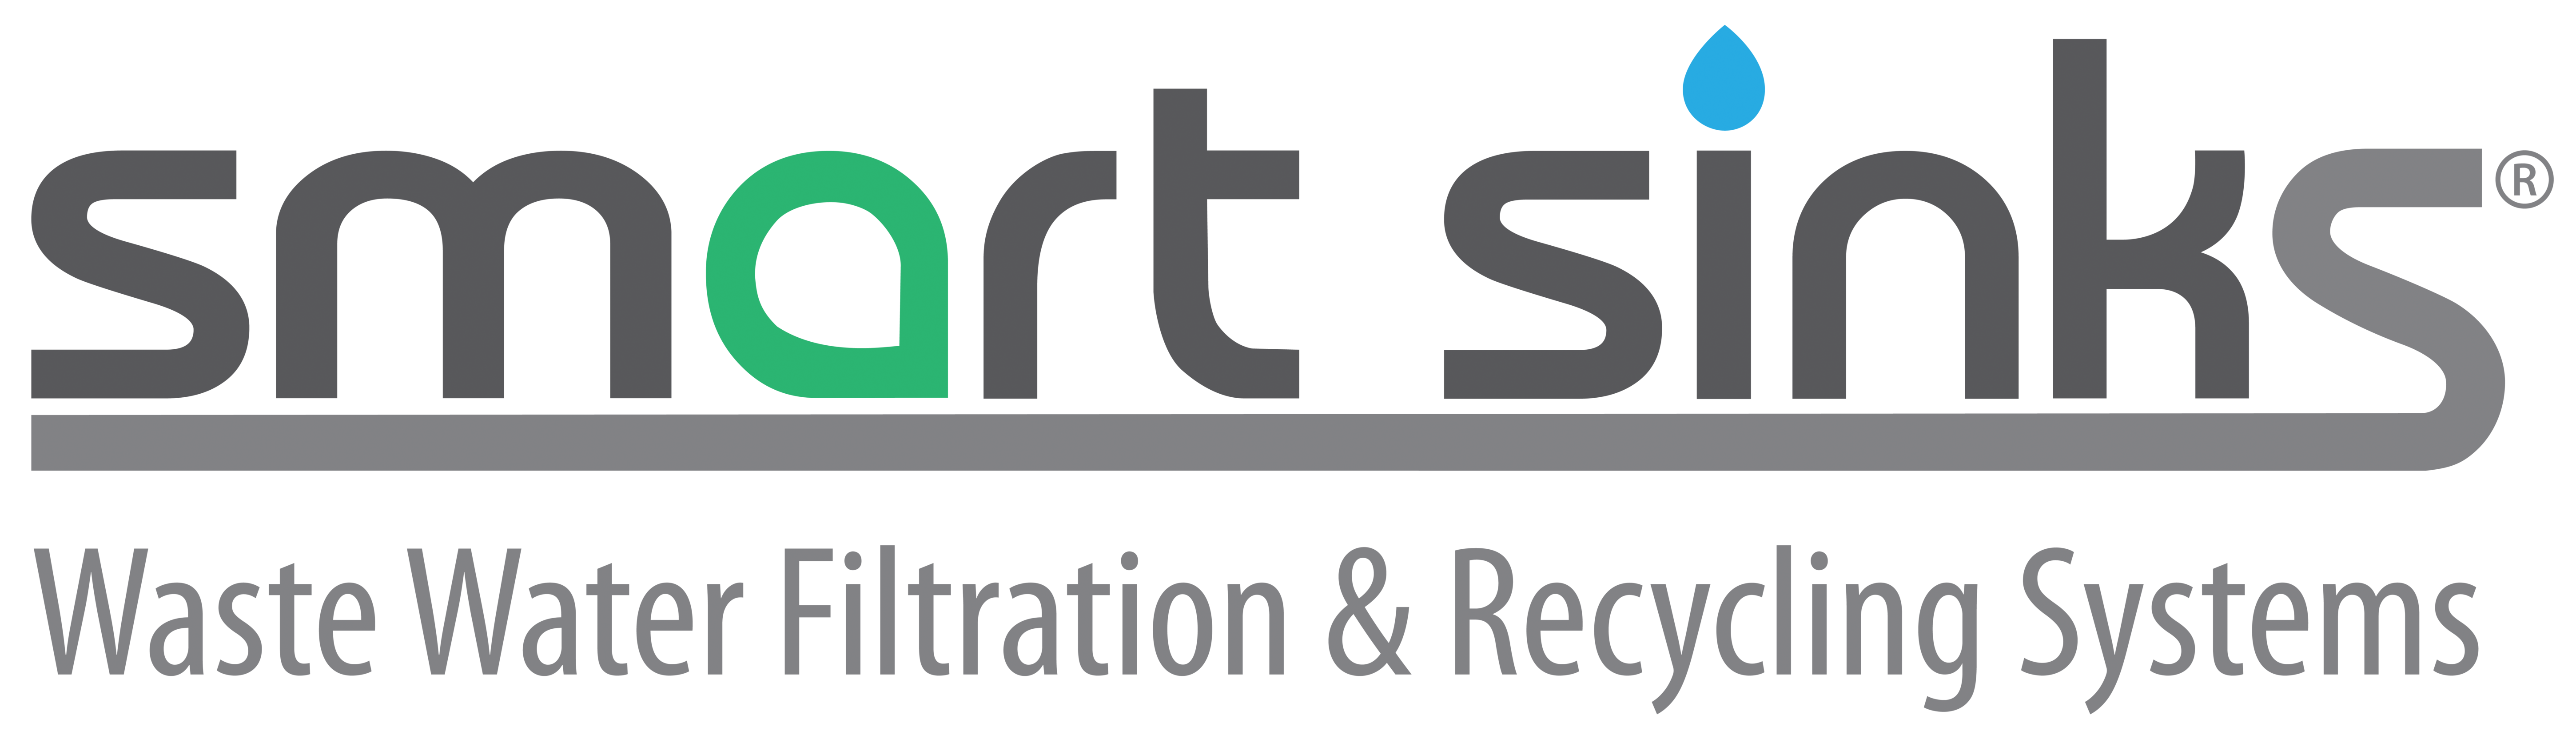 Smart Sinks Logo Hi Res 15 8 Hanson Leslie 50